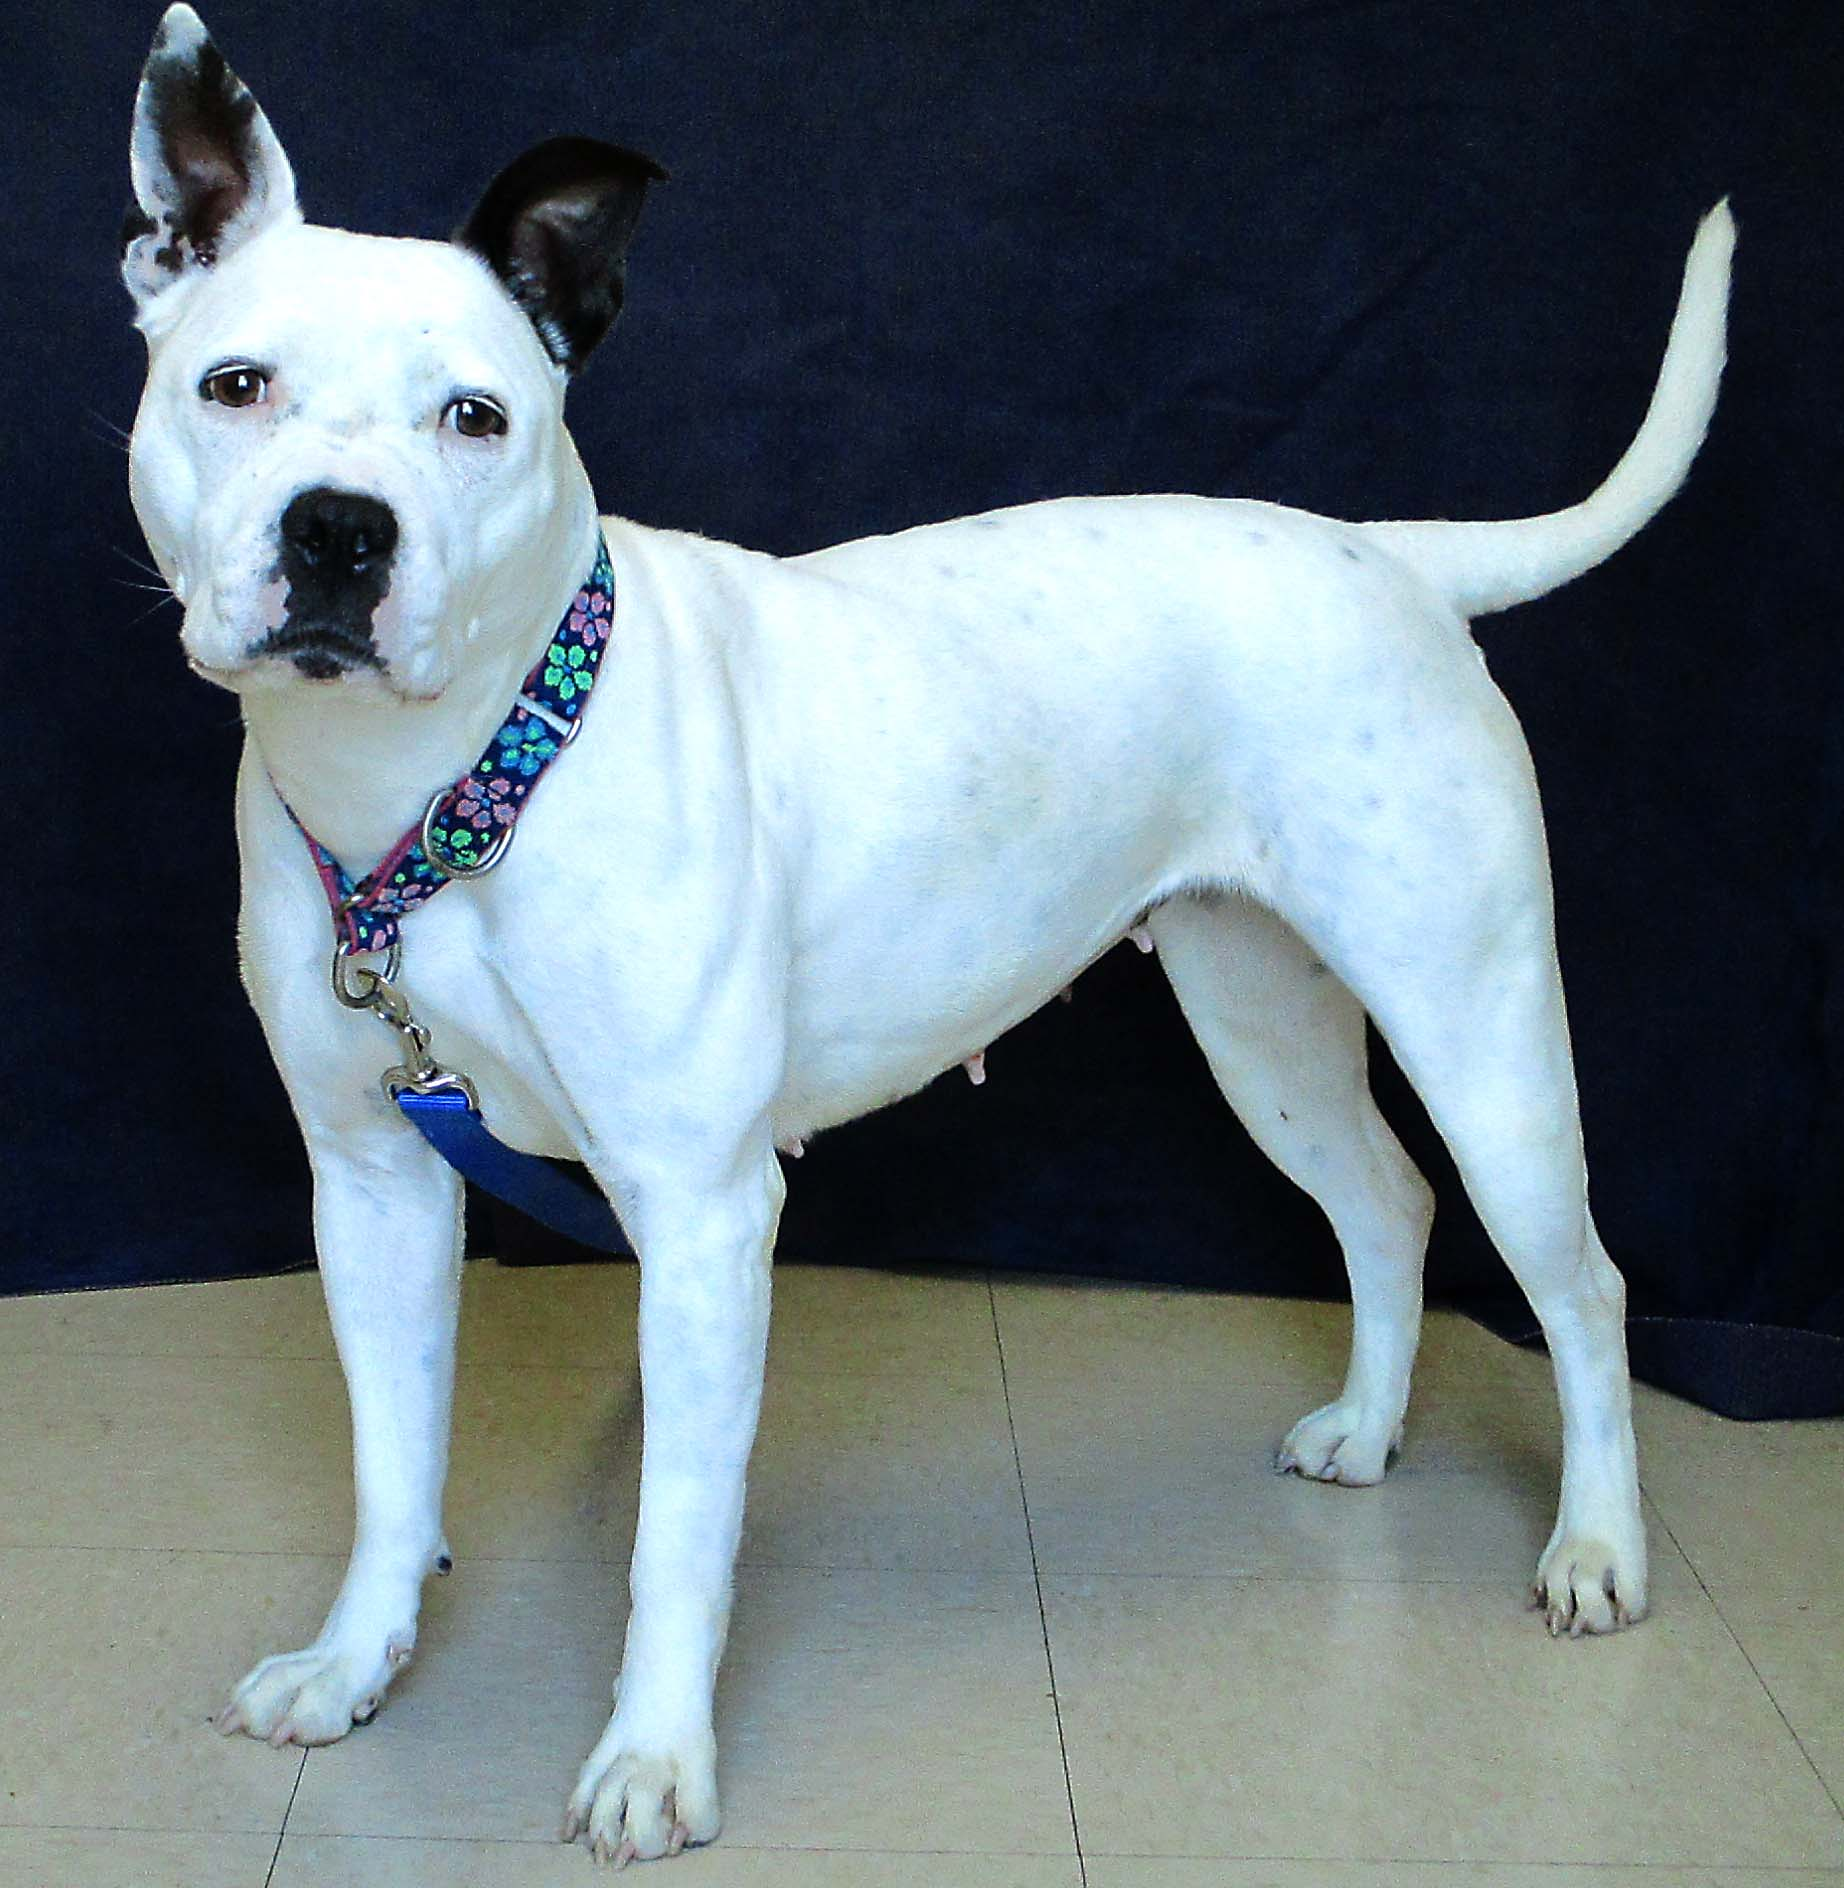 Starlyn is a 3 year old Pit Bull Terrier who is very strong and also very social. She may do best in a home being the only pet as she demands a lot of attention. The staff has described her as sweet, happy, and playful!